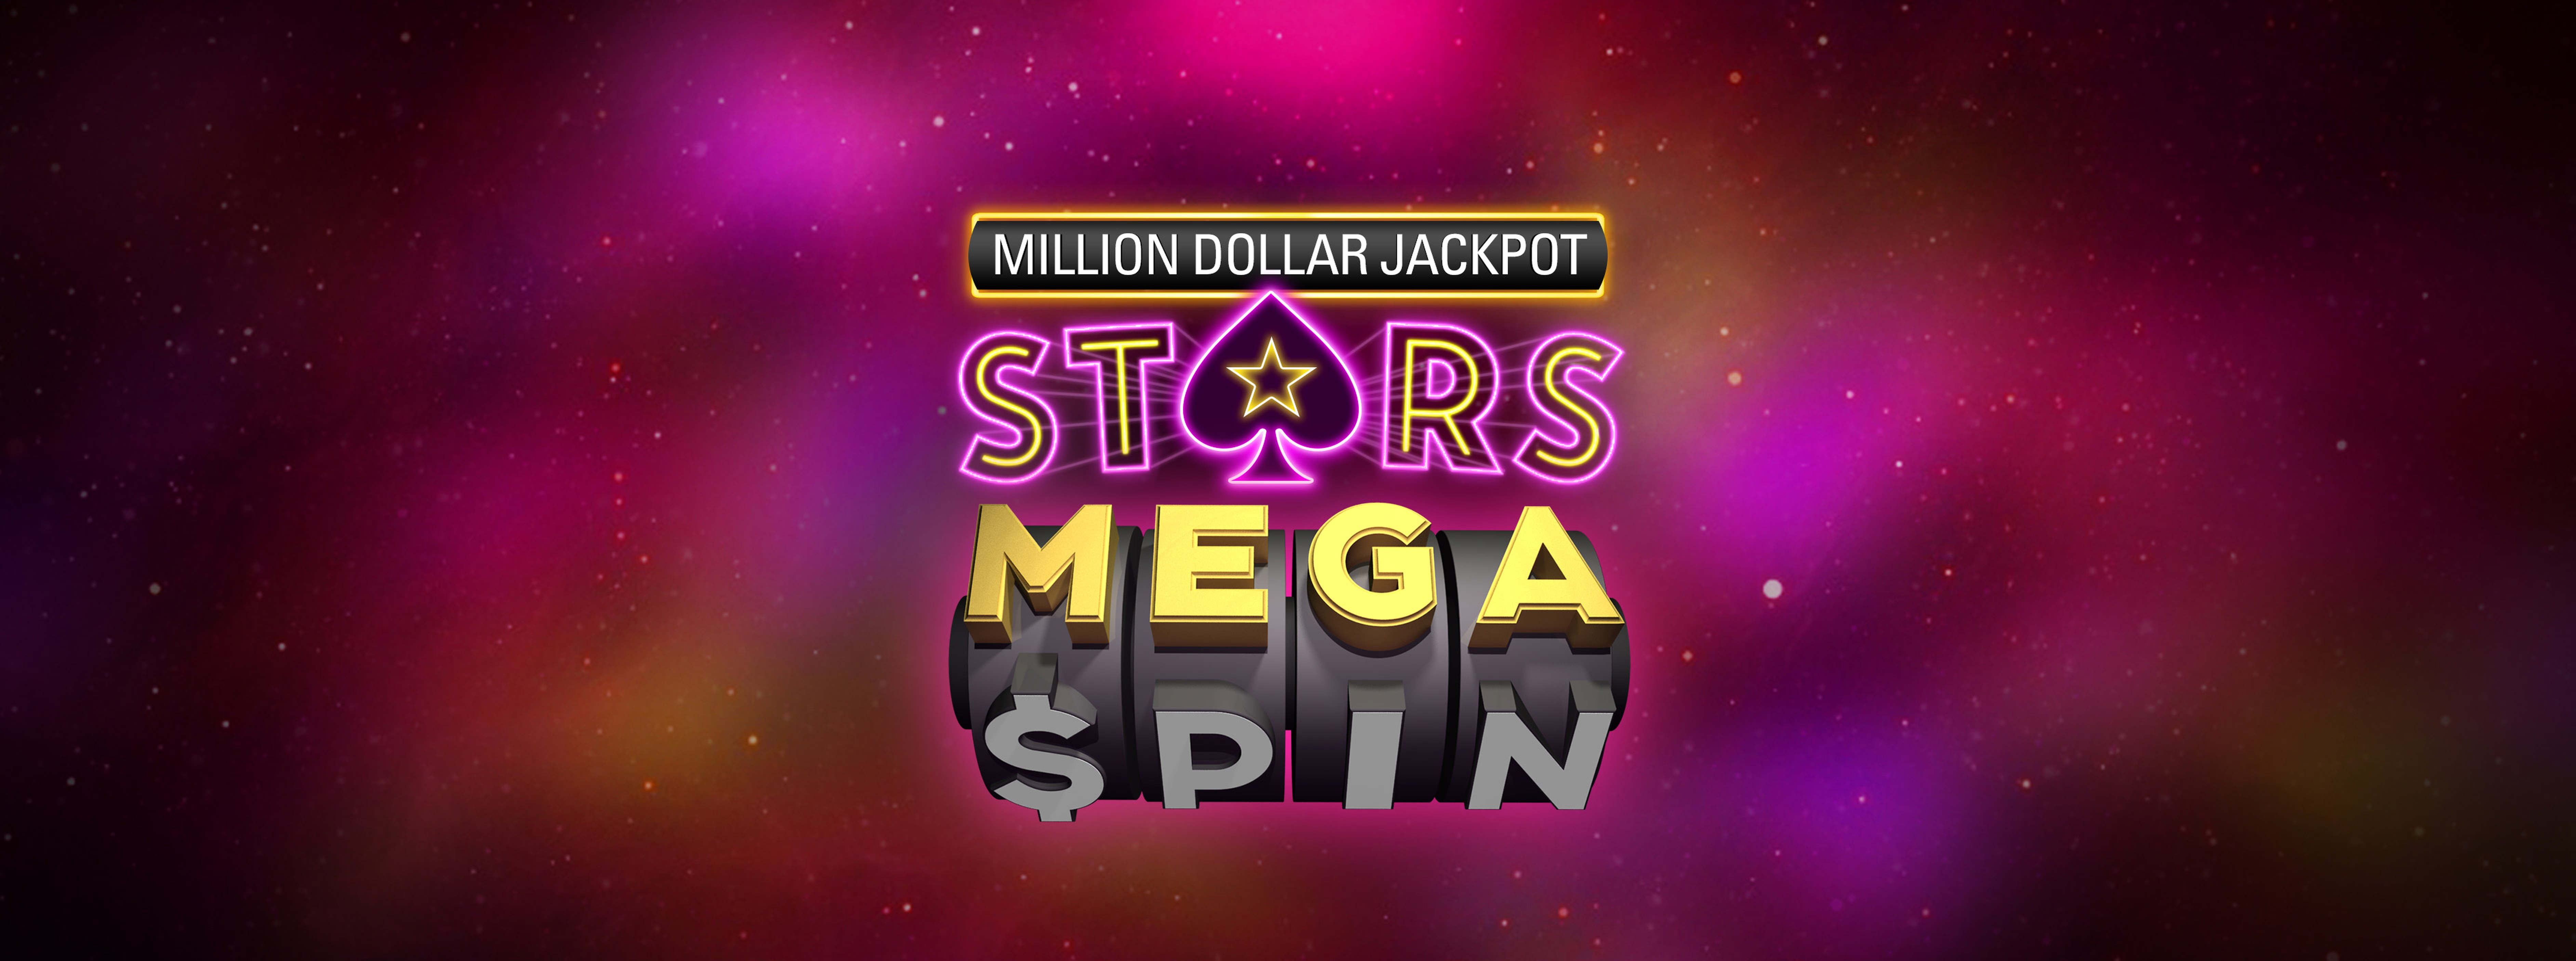 The Stars Mega Spin Online Slot Demo Game by The Stars Group